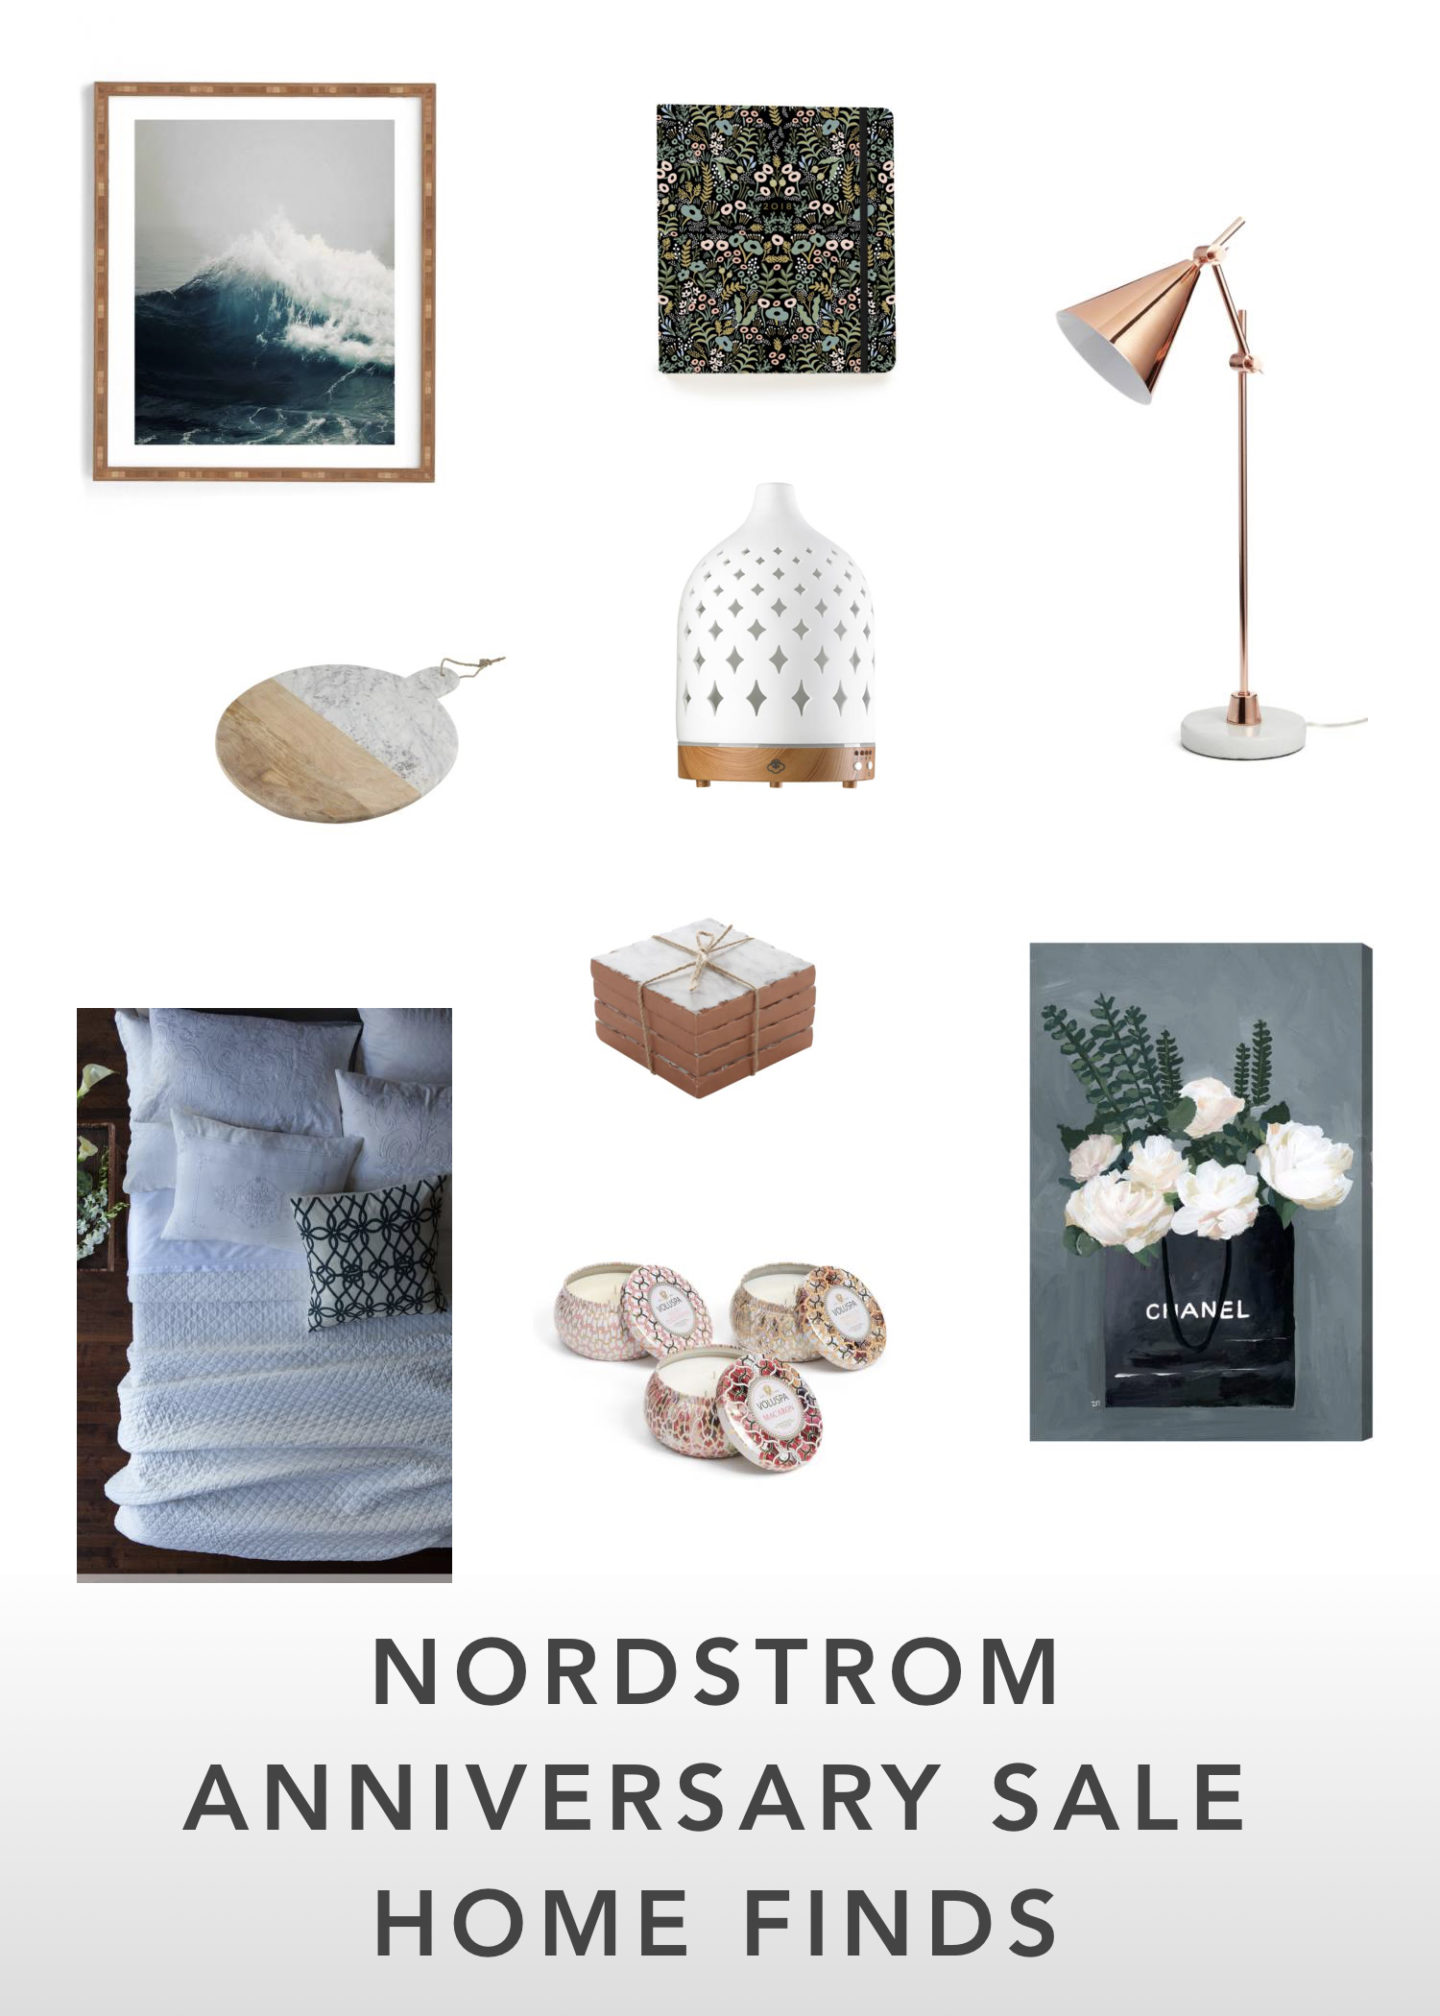 Nordstrom Anniversary Sale Home Finds | $500 Nordstrom Gift Card Giveaway | Lili Alessandra Bedding at Nordstrom